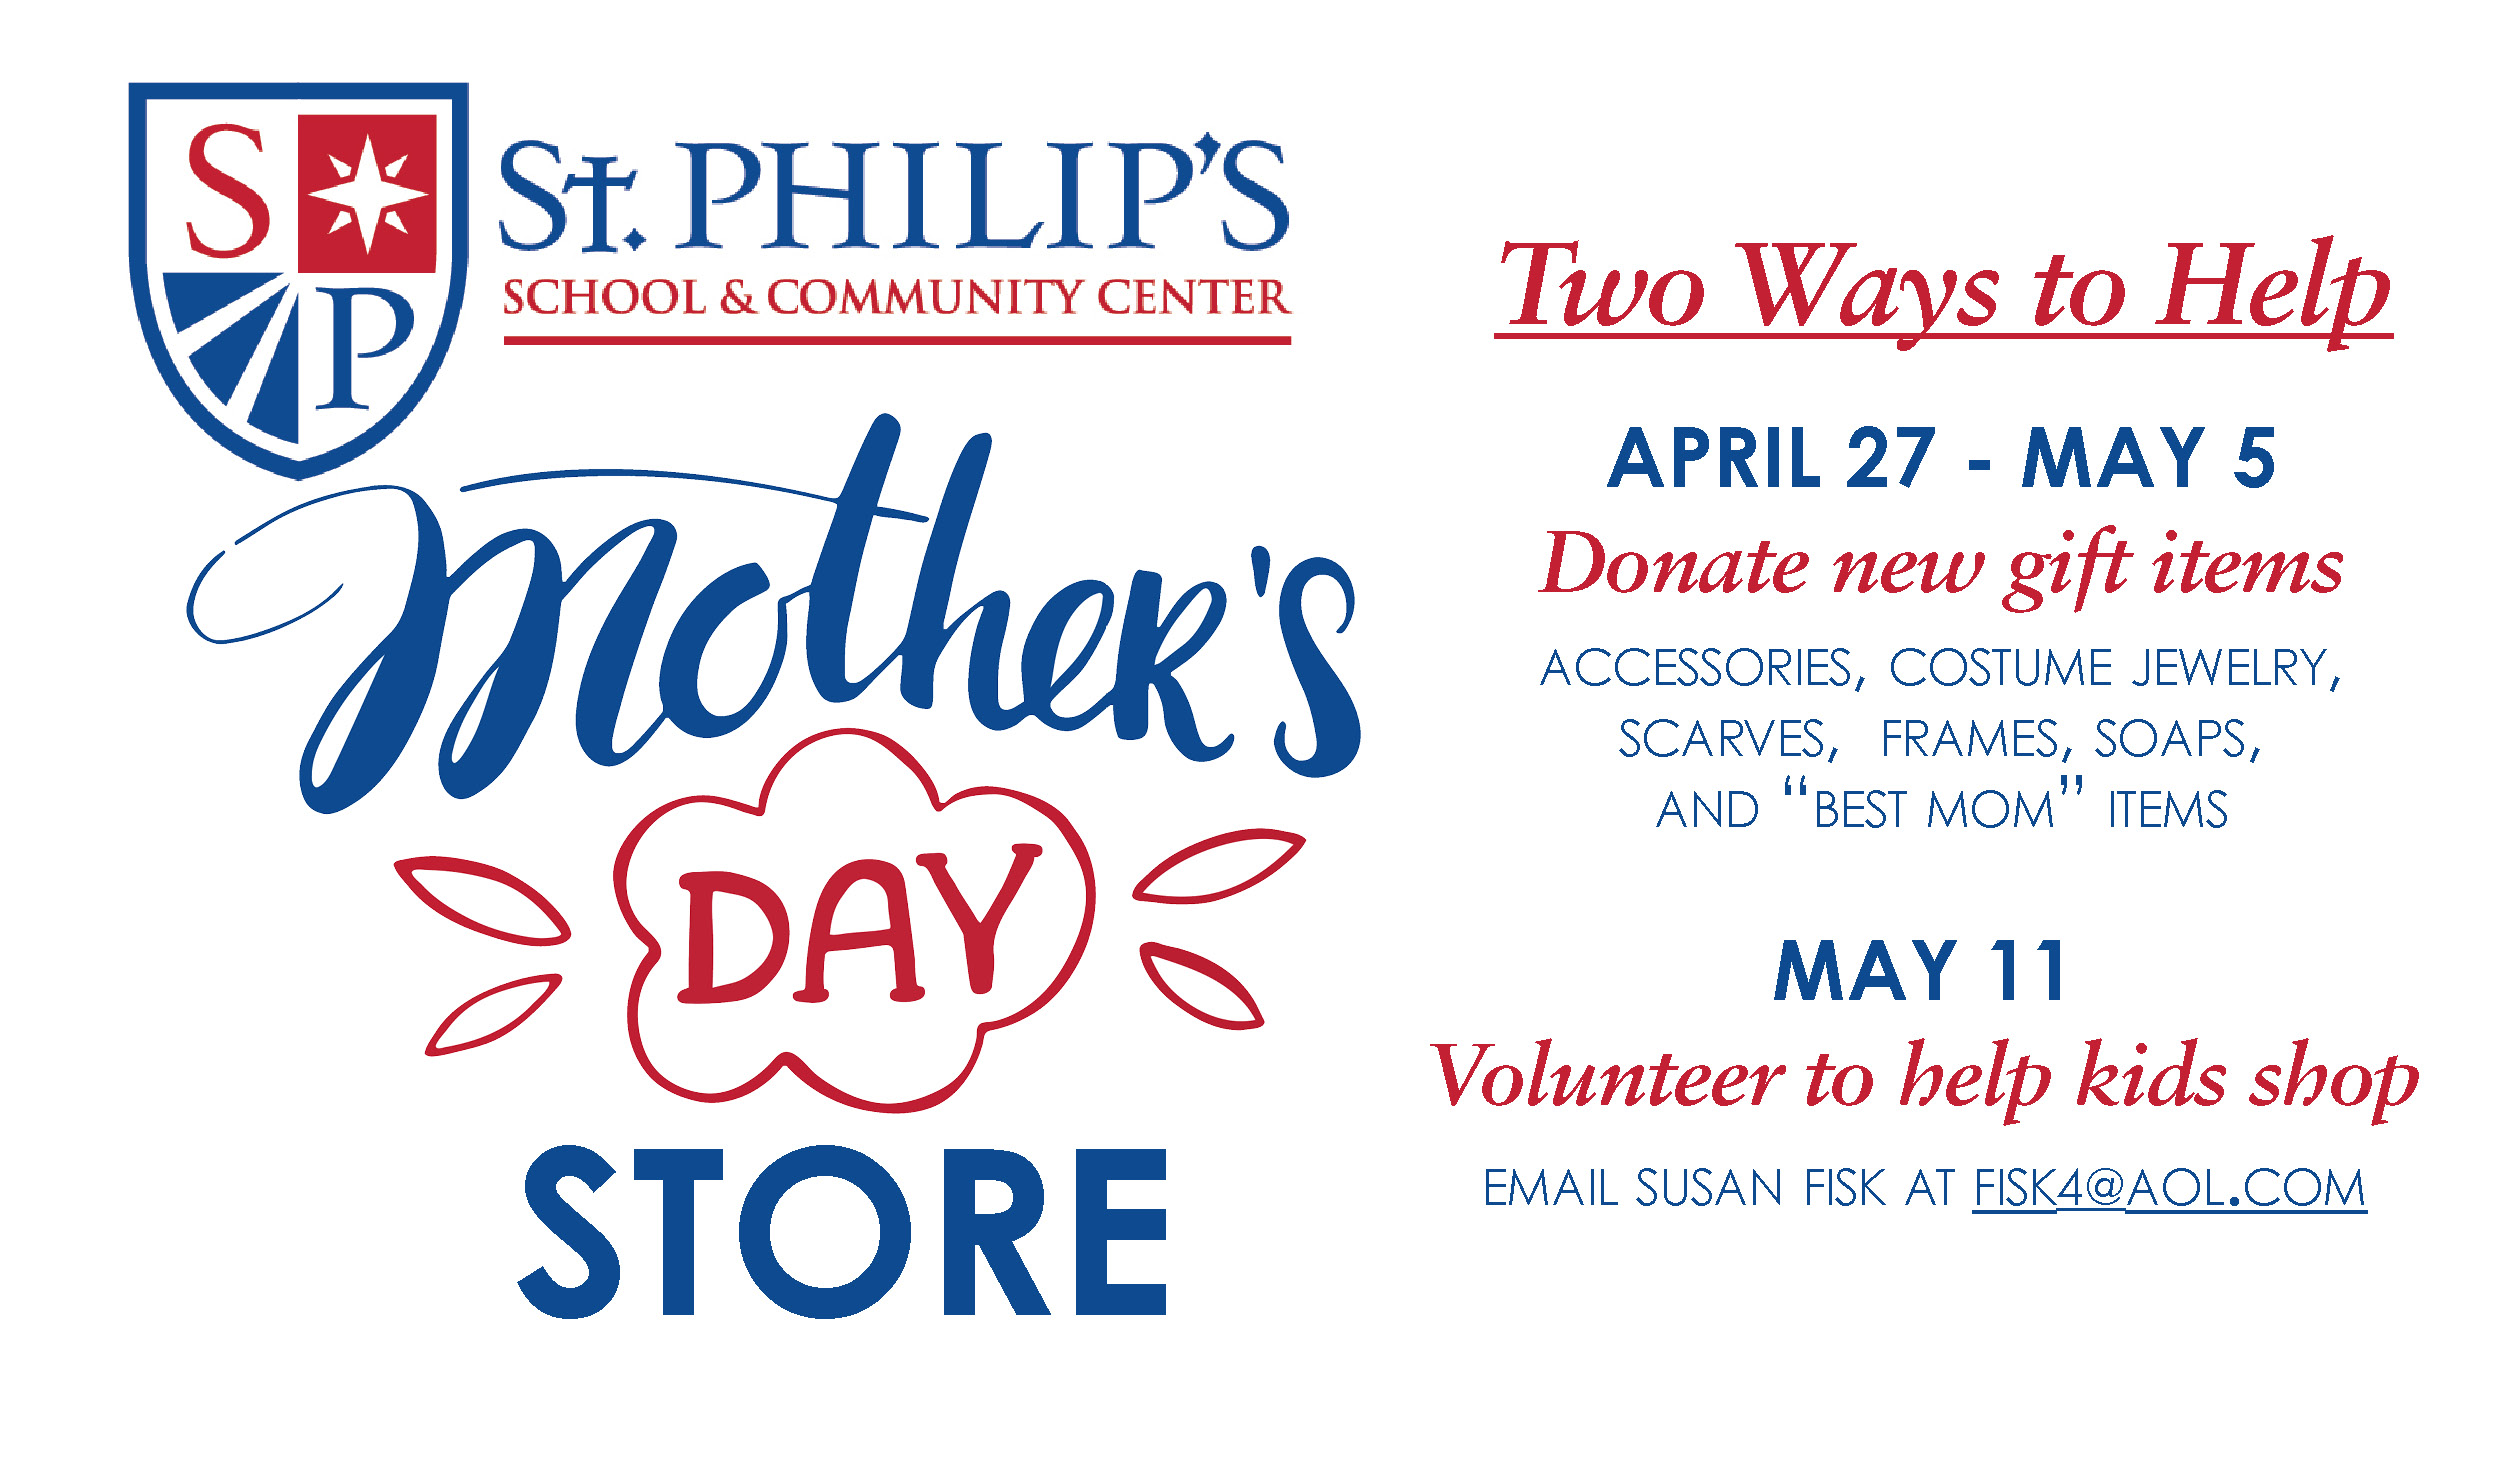 St. Philip's School & Community Center – Mother's Day Store